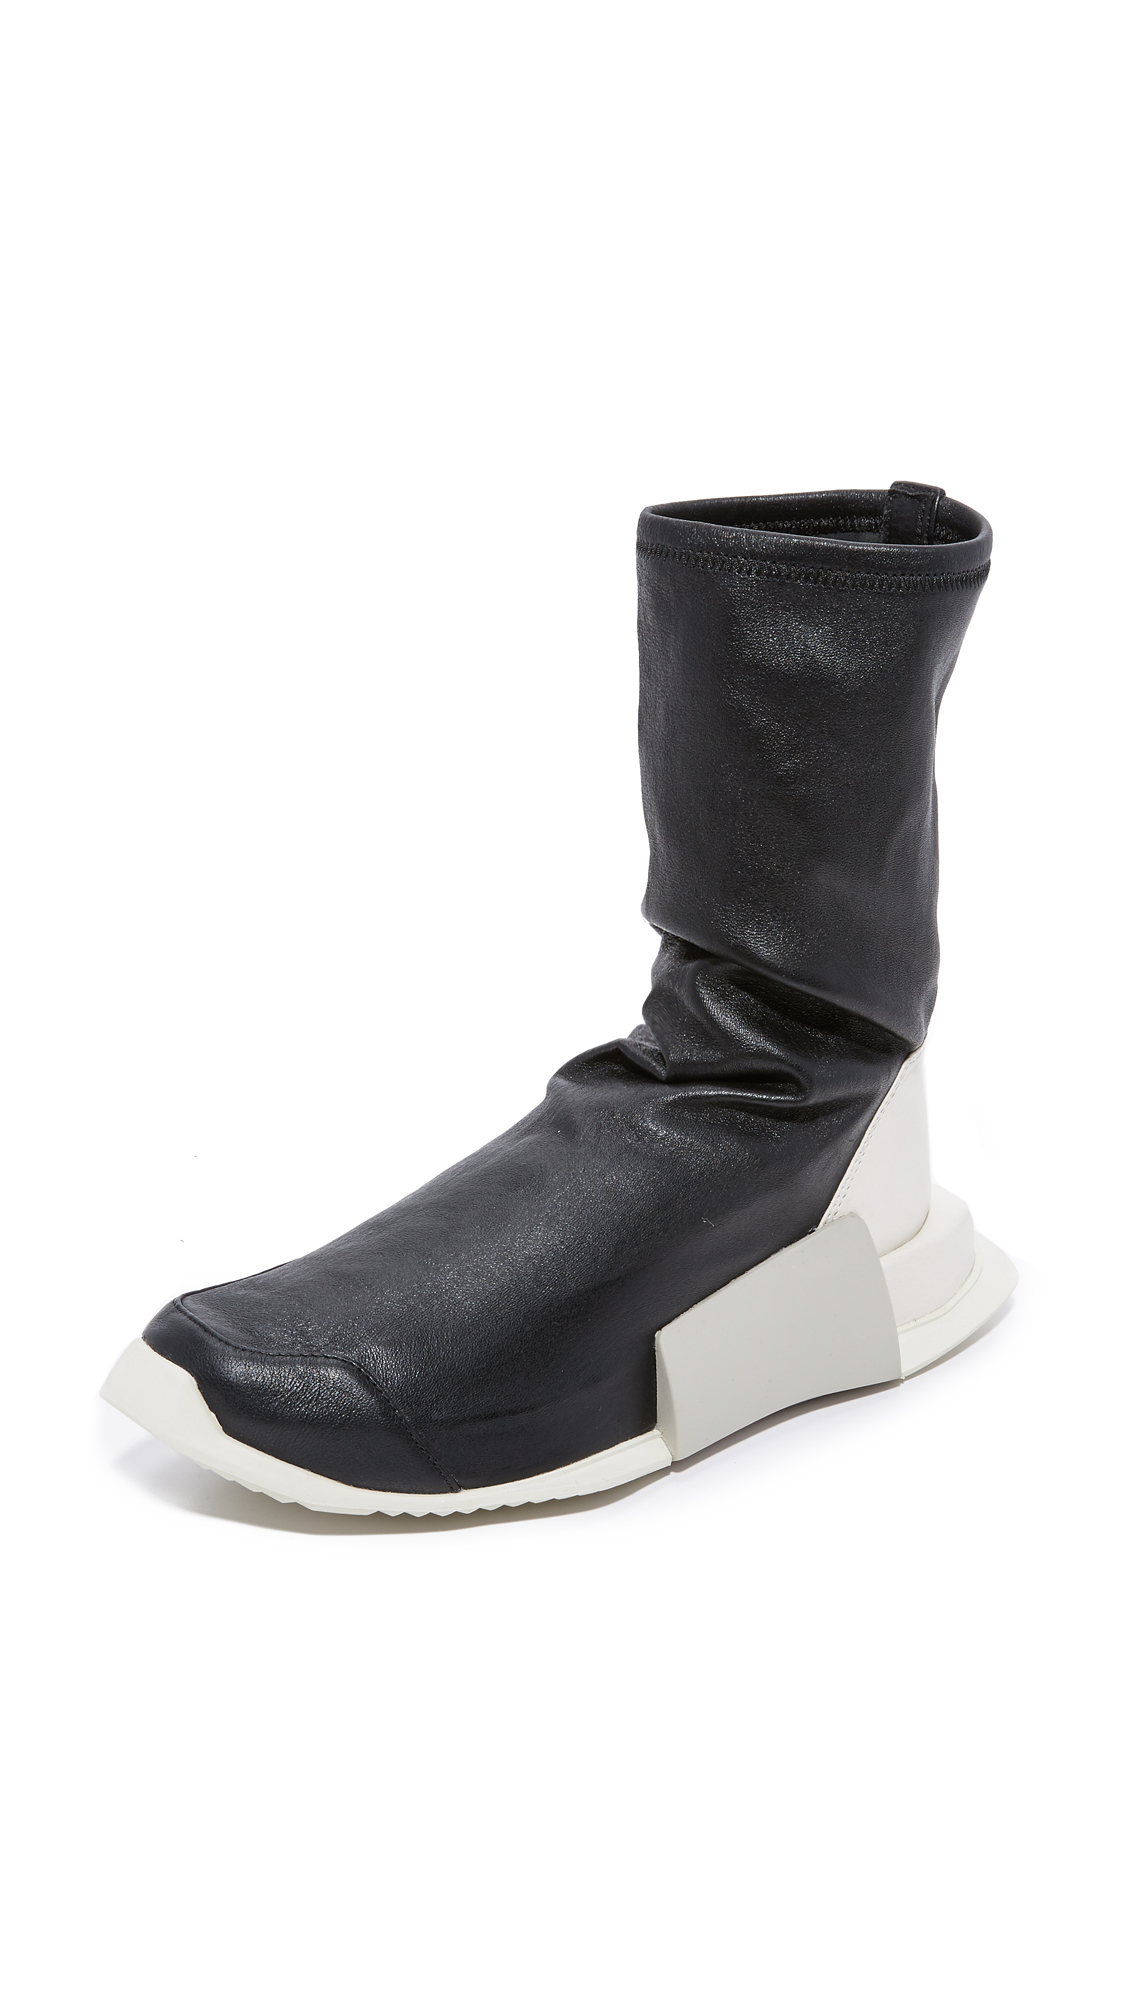 Photo of Adidas Adidas X Rick Owens Level High Runners Black-Milk-Dinge - Adidas online